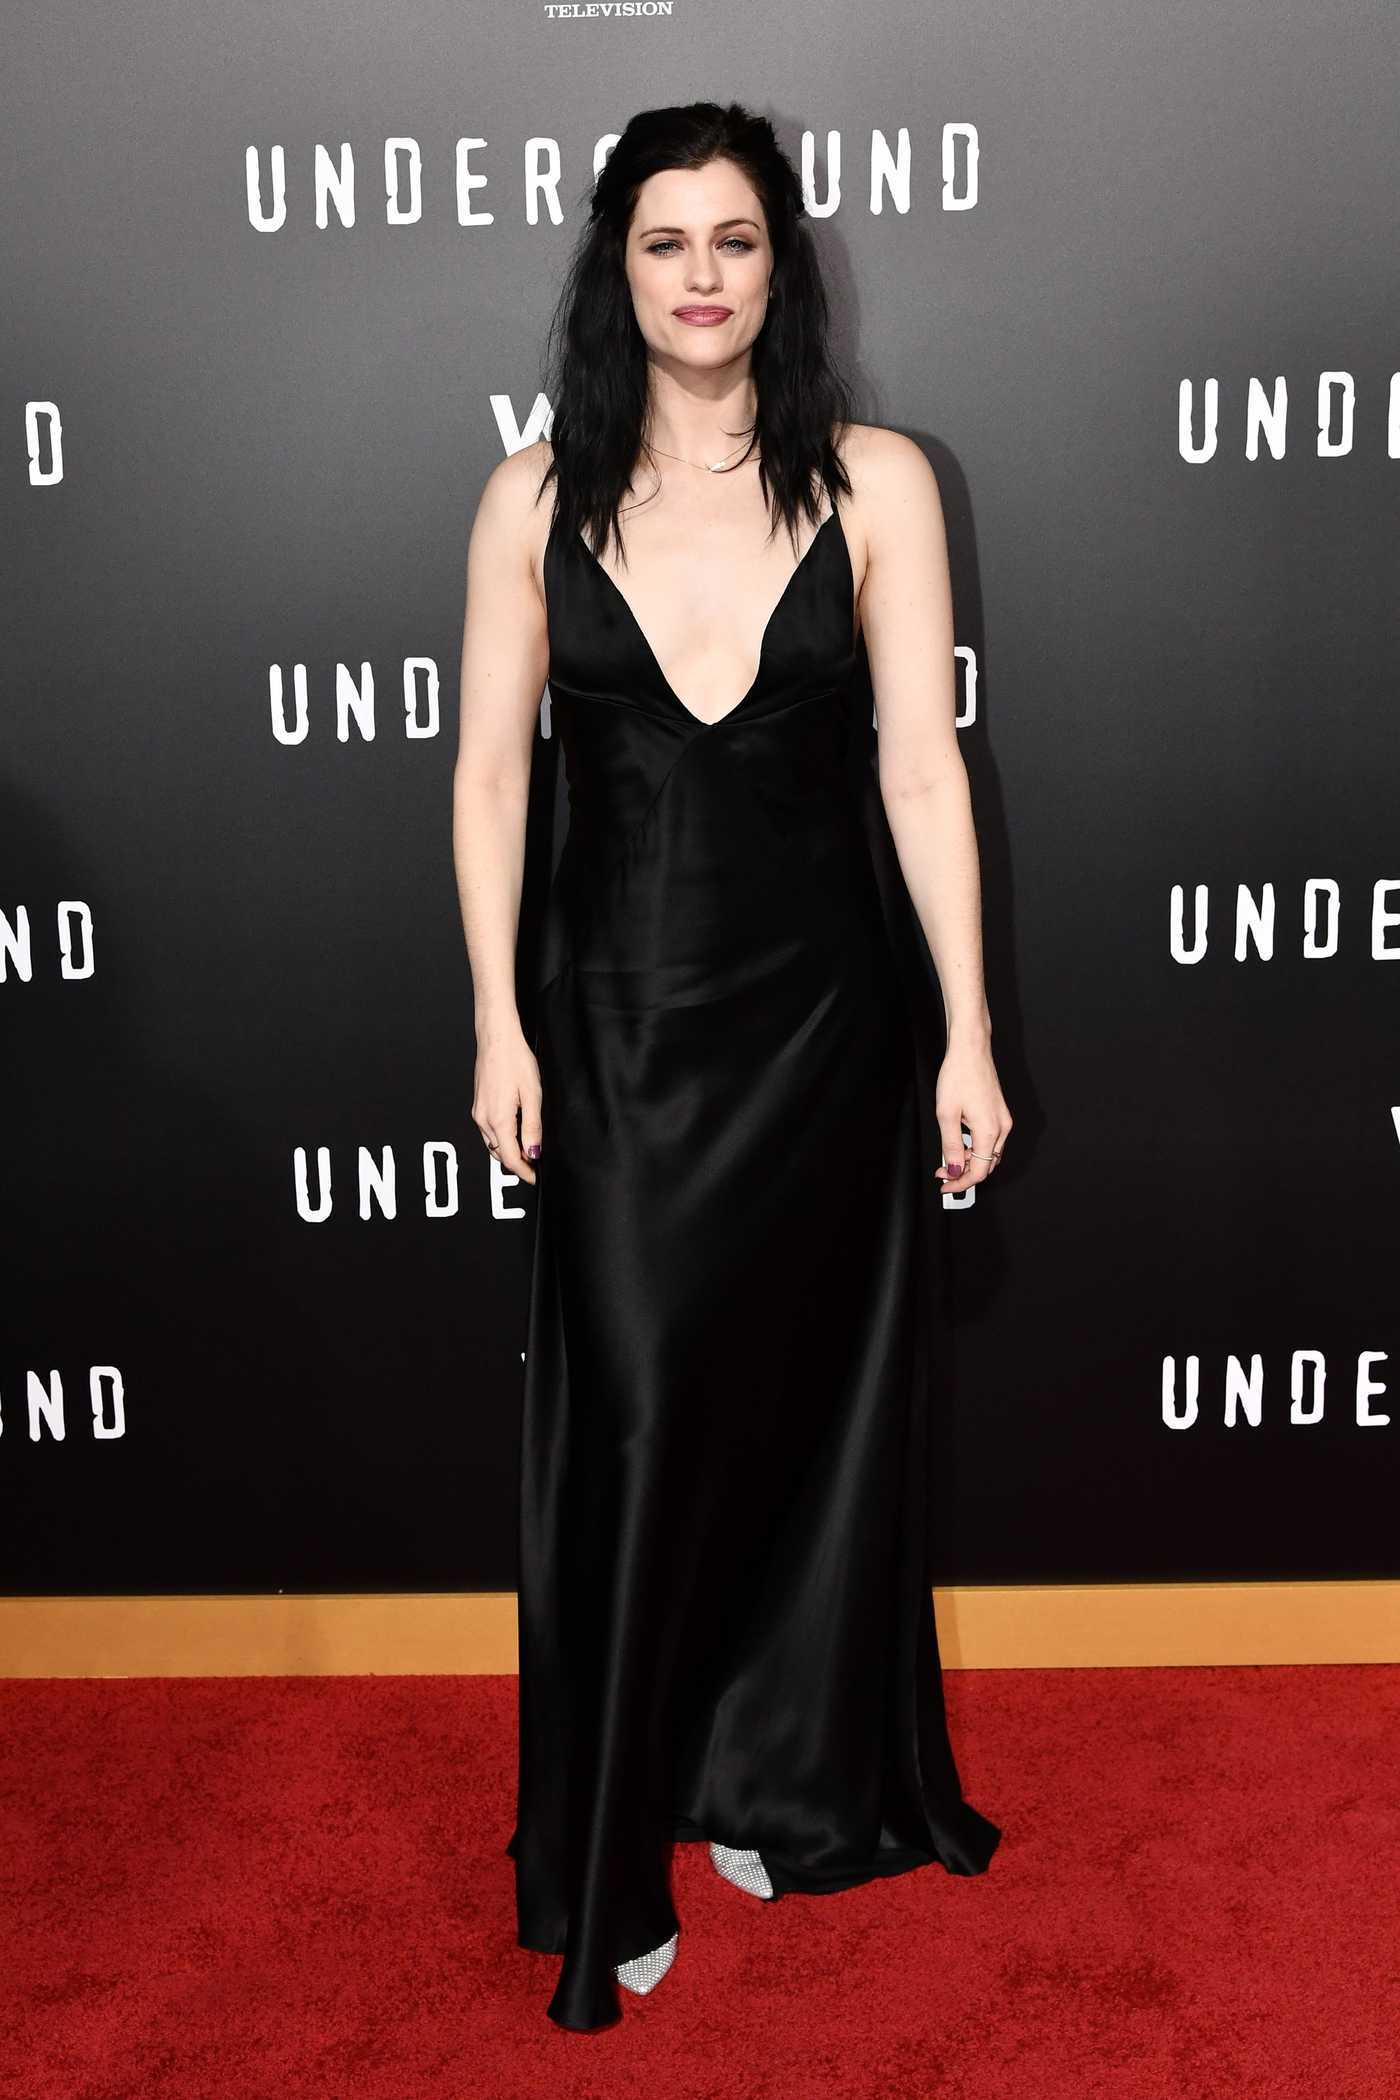 Jessica De Gouw at Underground TV Series Season 2 Premiere in Los Angeles 02/28/2017